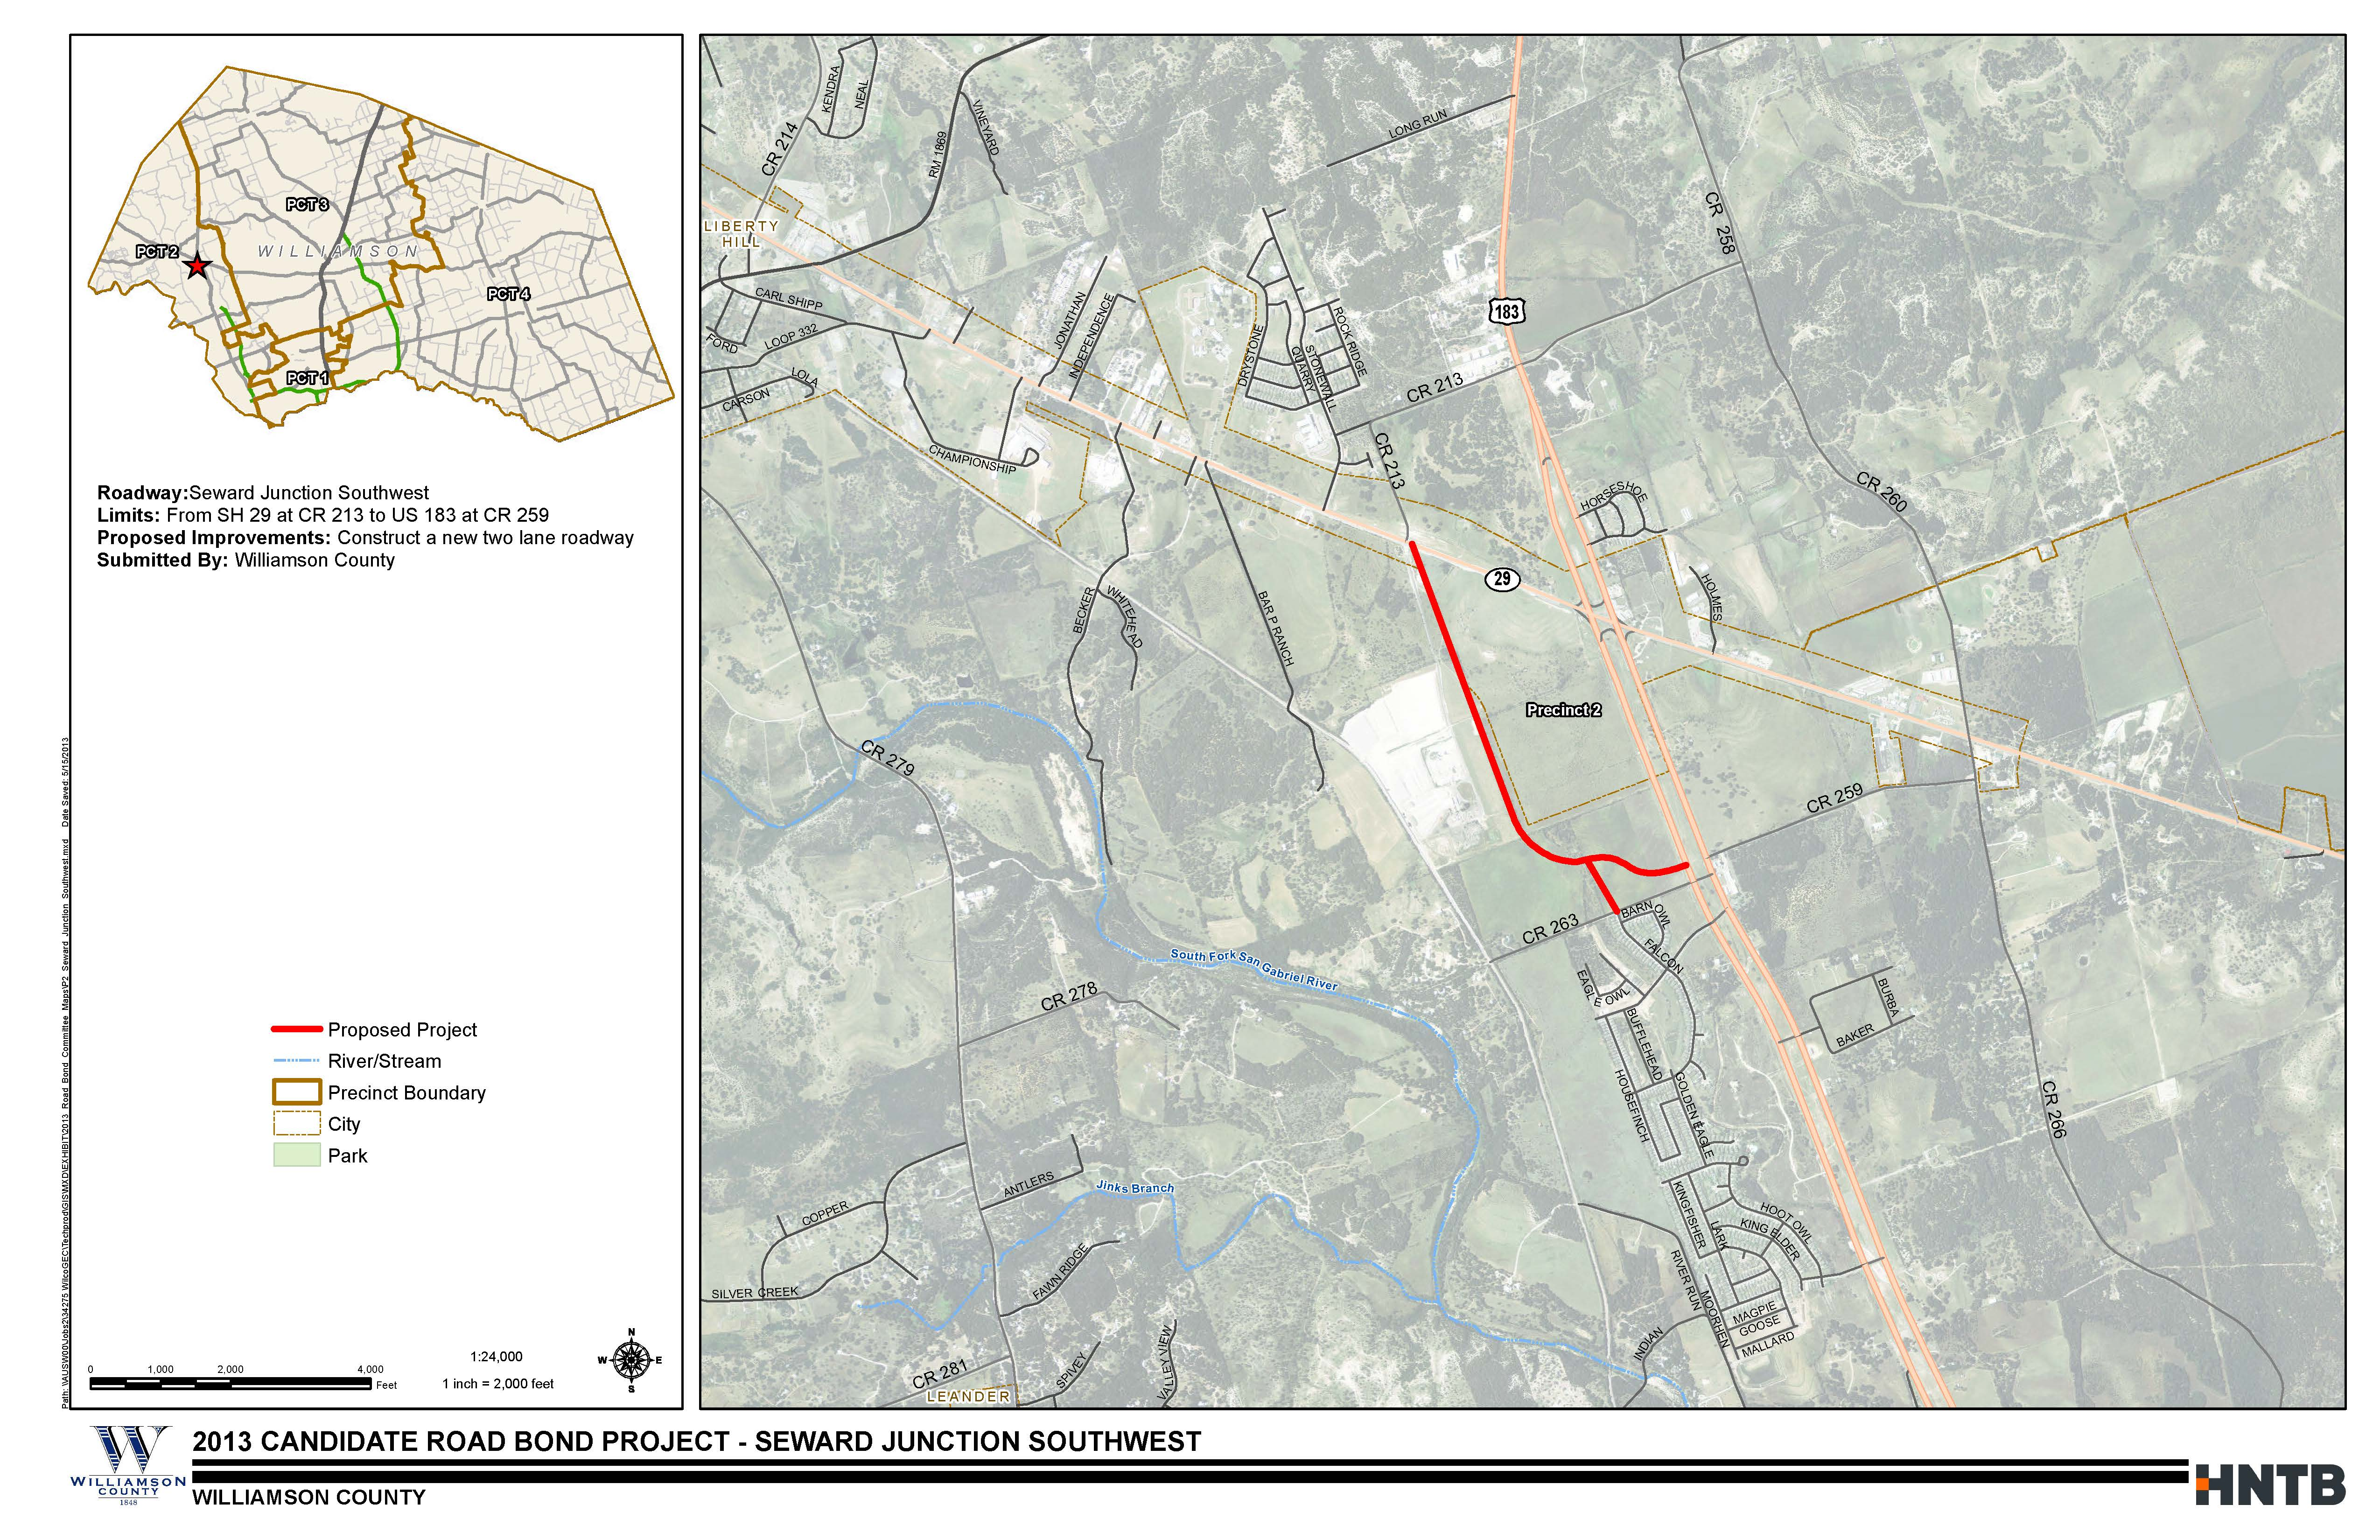 Seward Junction Southwest Project Map